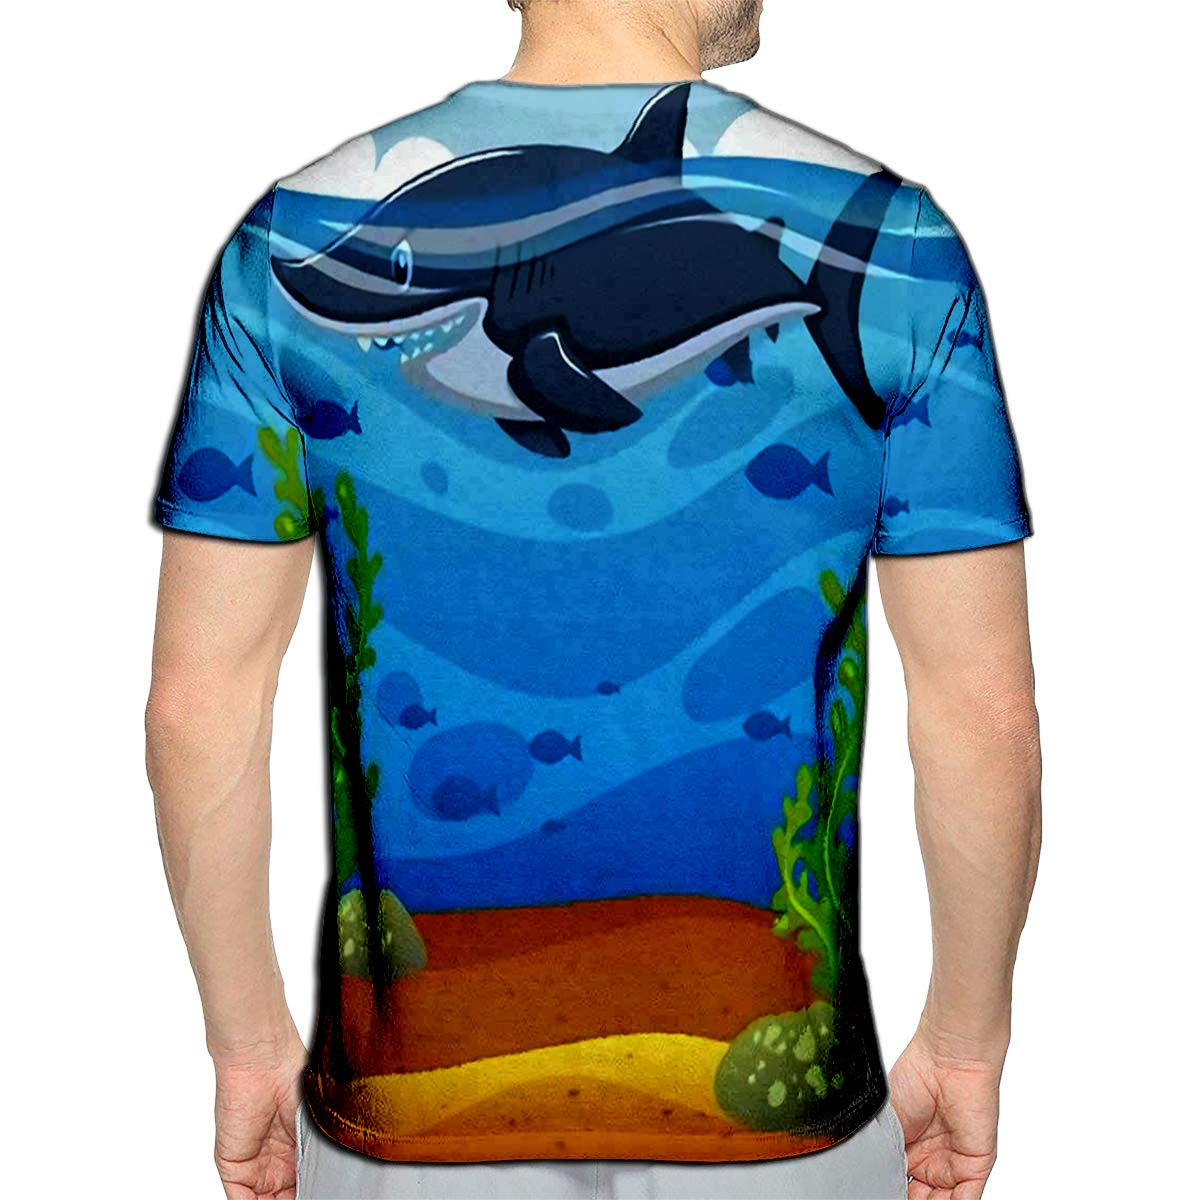 3D Printed T-Shirts Dont Let Your Mind Kill Your Heart Soul Short Sleeve Tops Te